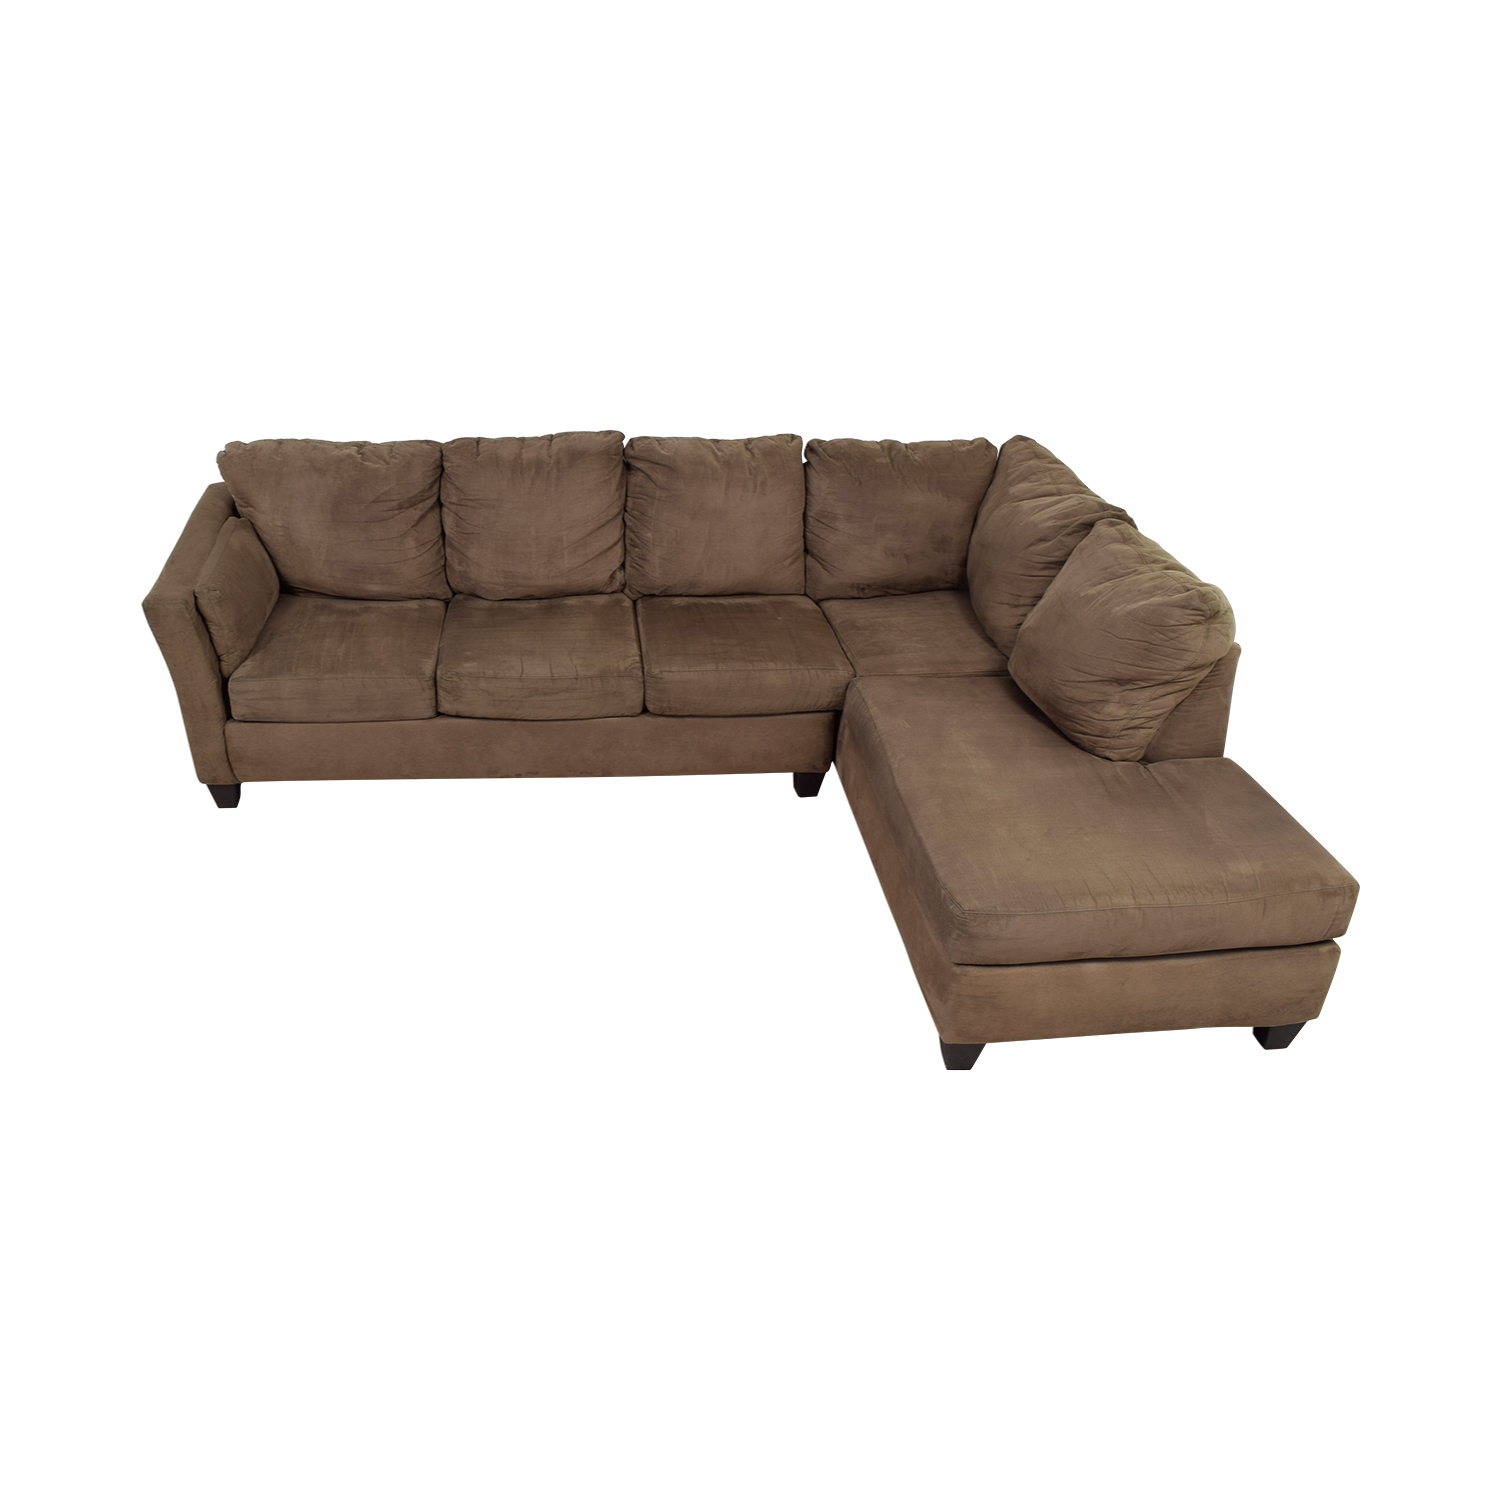 buy Bob's Furniture Libre II Brown L-Shaped Chaise Sectional Bob's Furniture